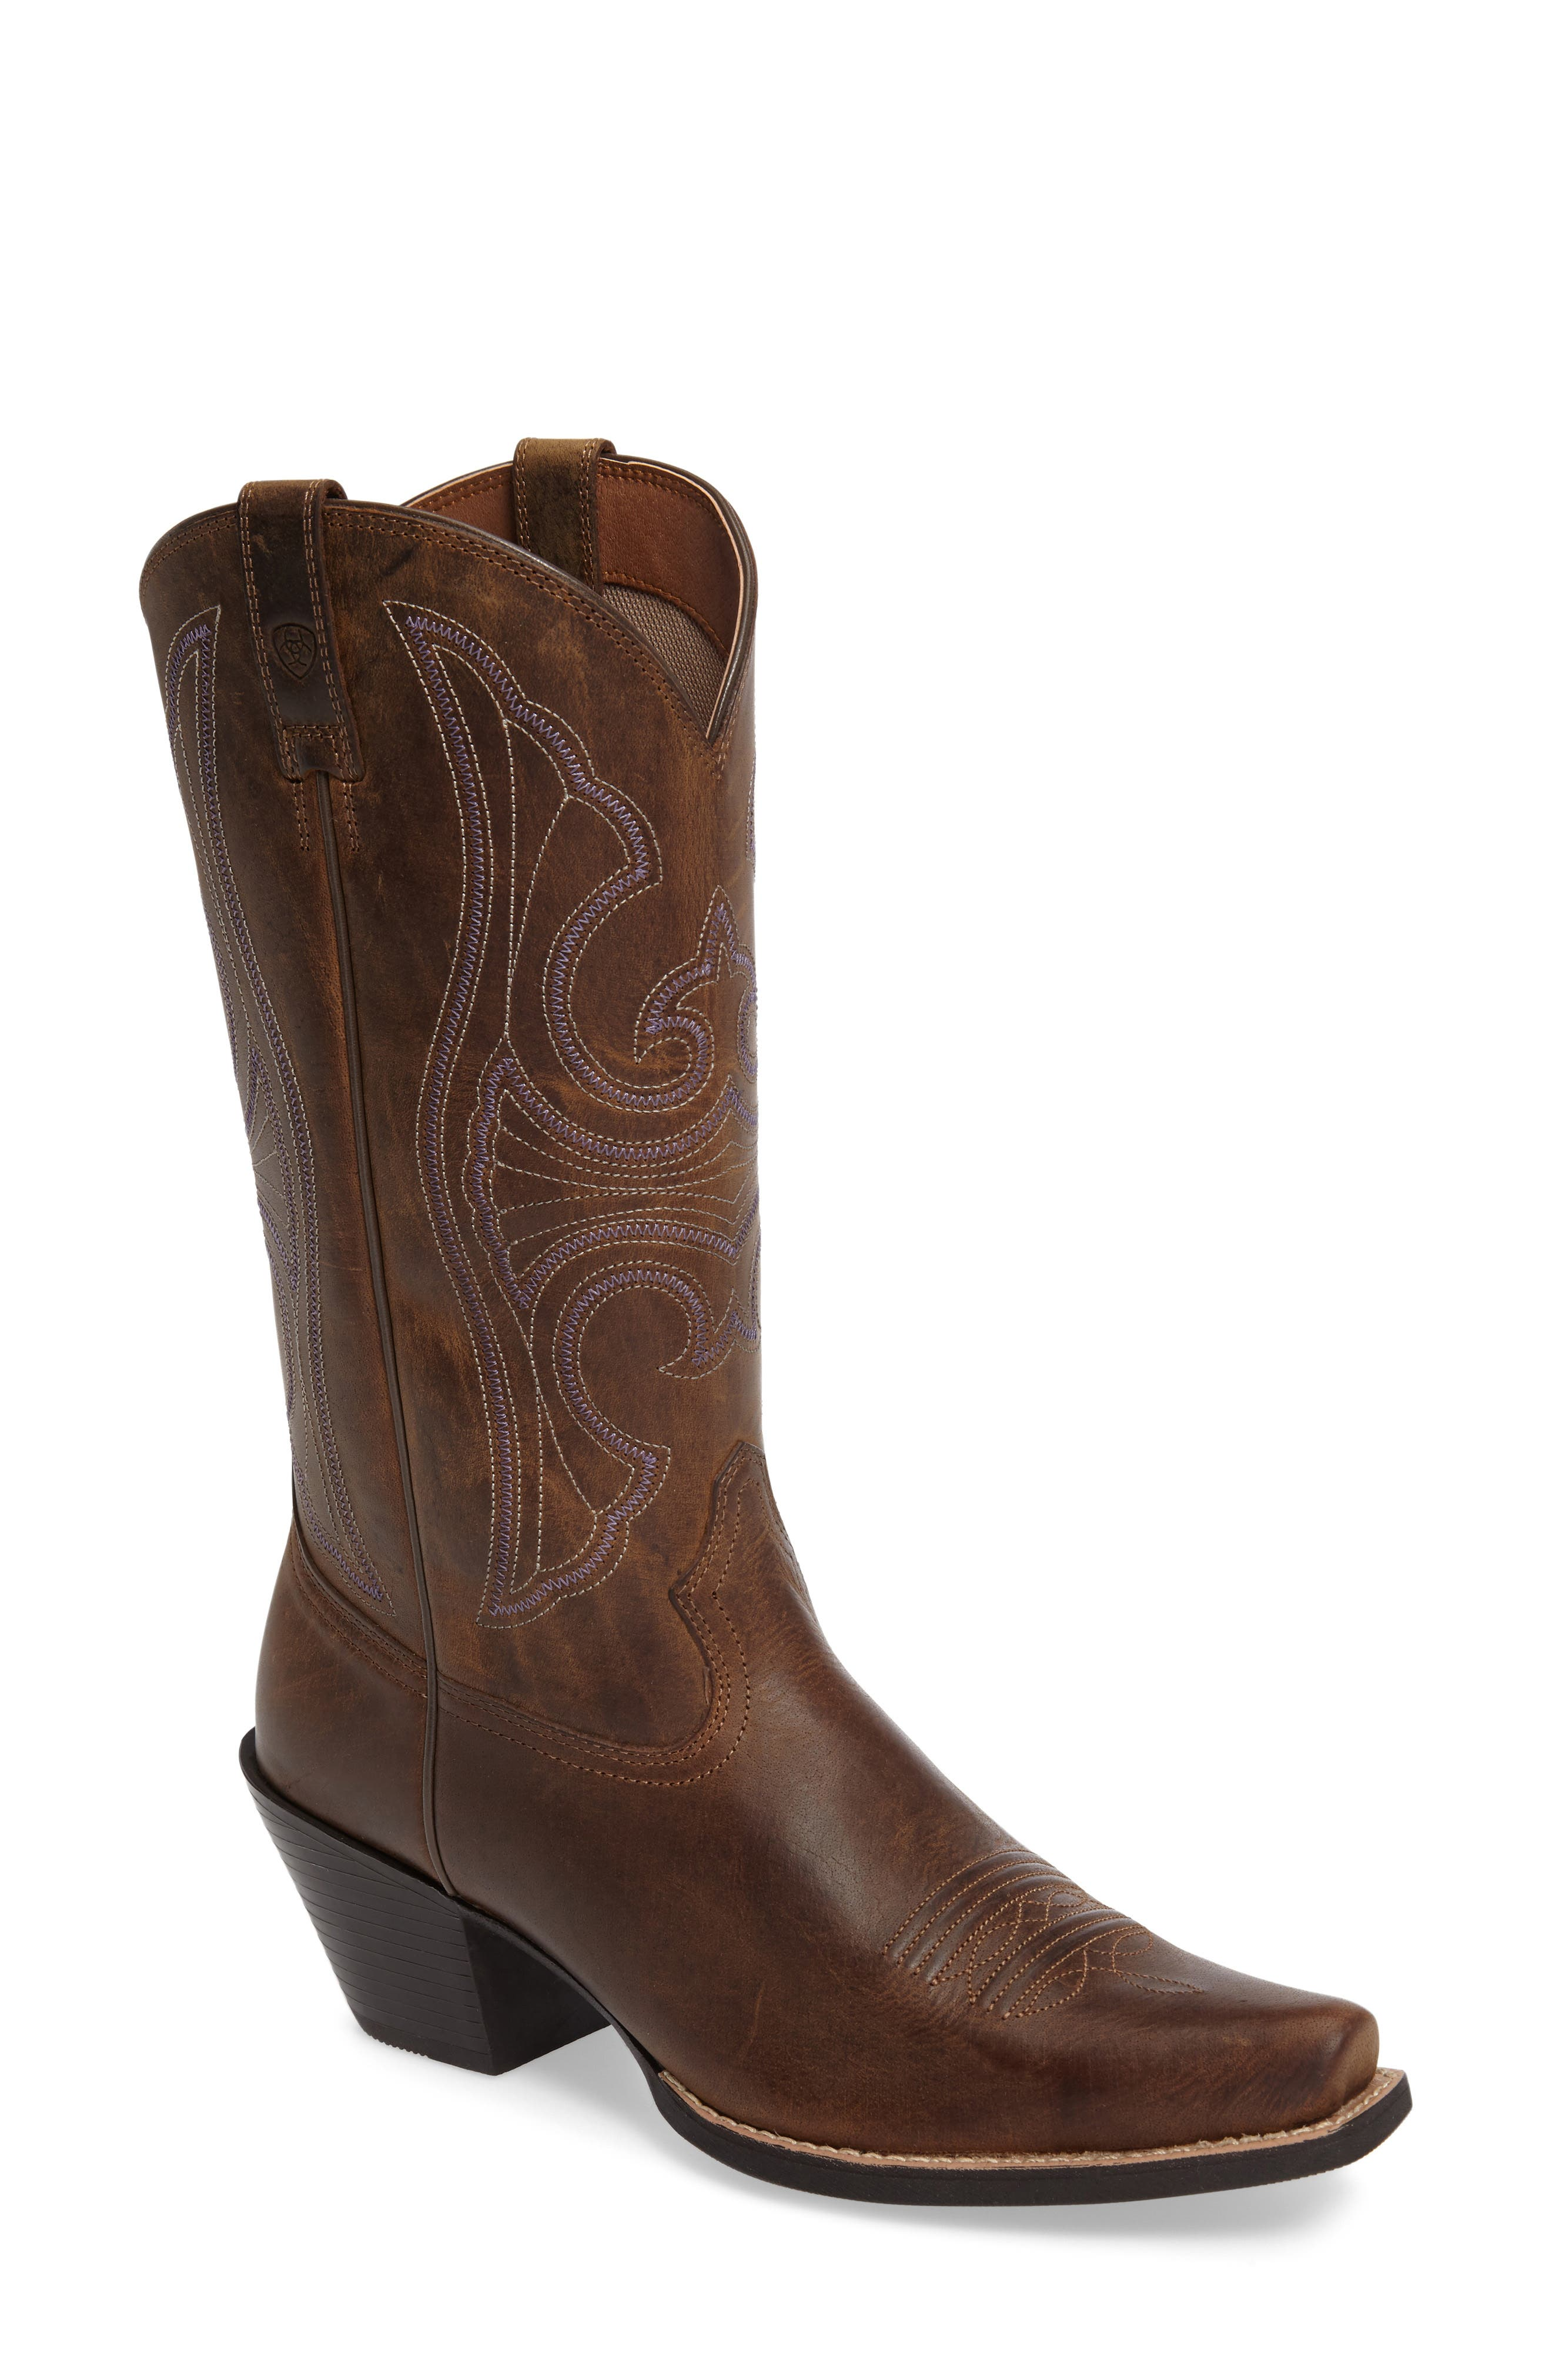 Main Image - Ariat Round Up D-Toe Western Boot (Women)